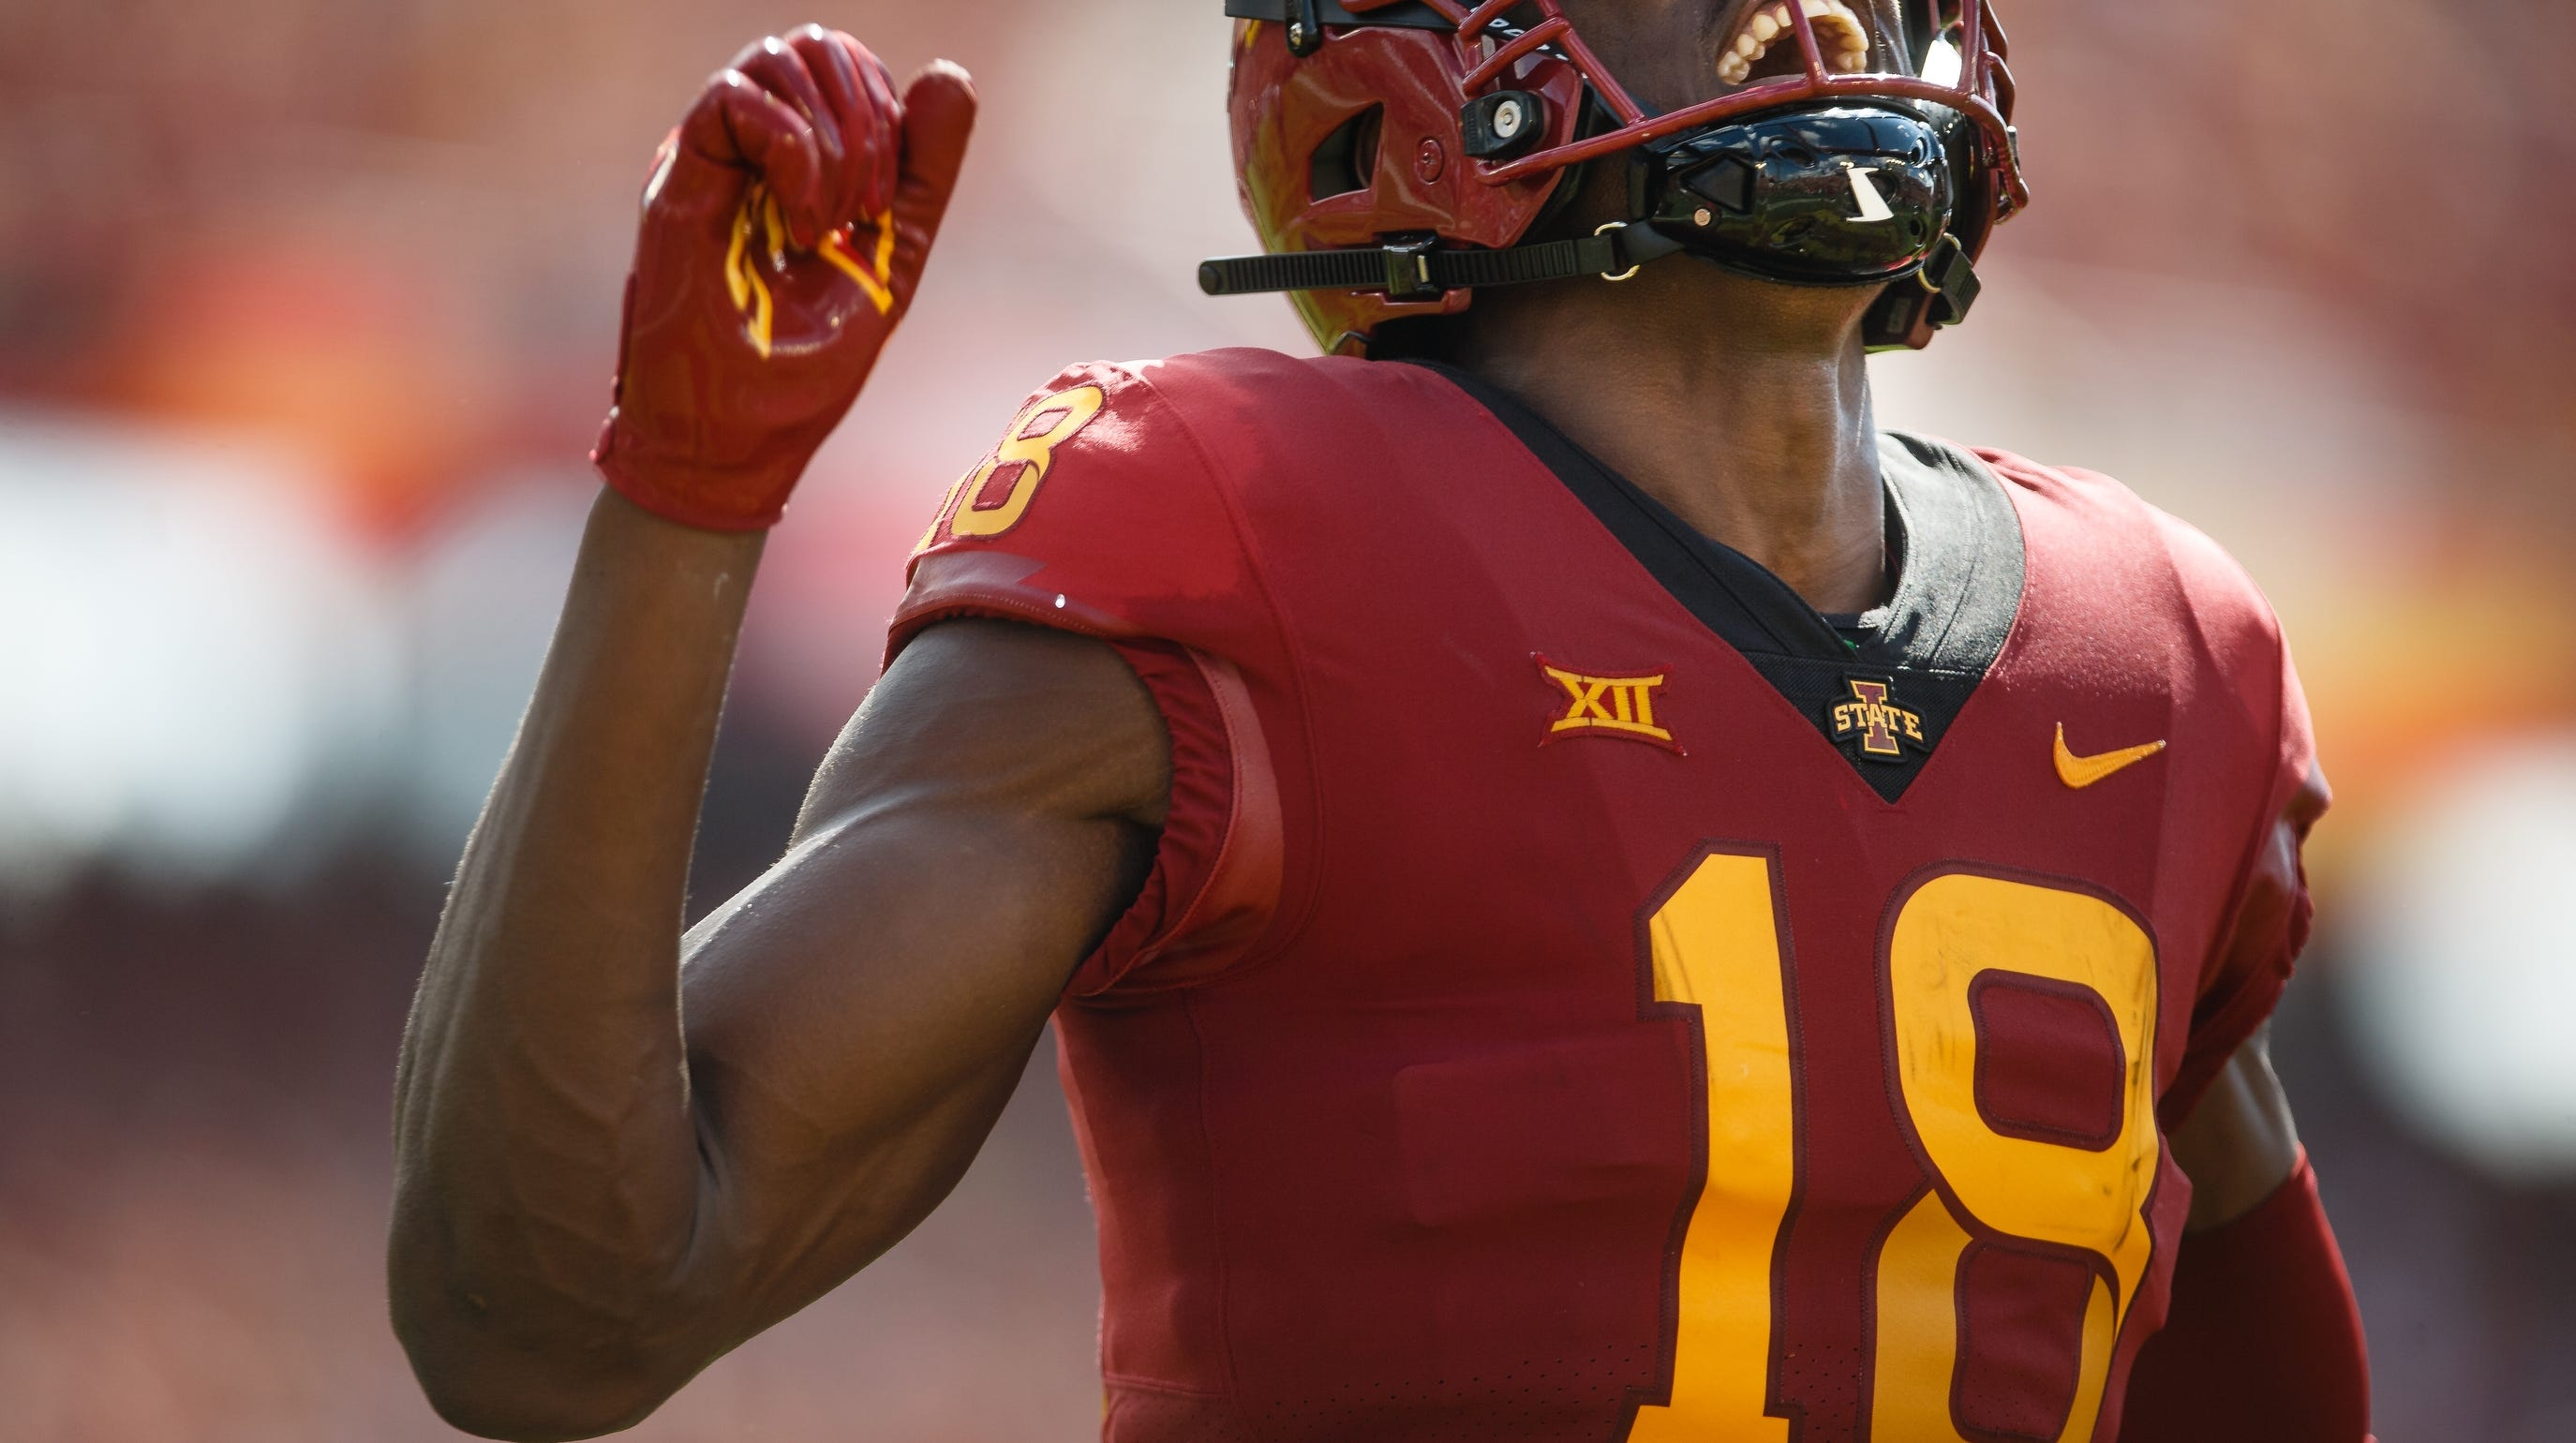 Iowa State's Hakeem Butler (18) celebrates after scoring a touchdown to tie the game at 10 during their football game against Oklahoma at Jack Trice Stadium on Saturday, Sept. 15, 2018 in Ames. Oklahoma takes a 24-10 lead into halftime.